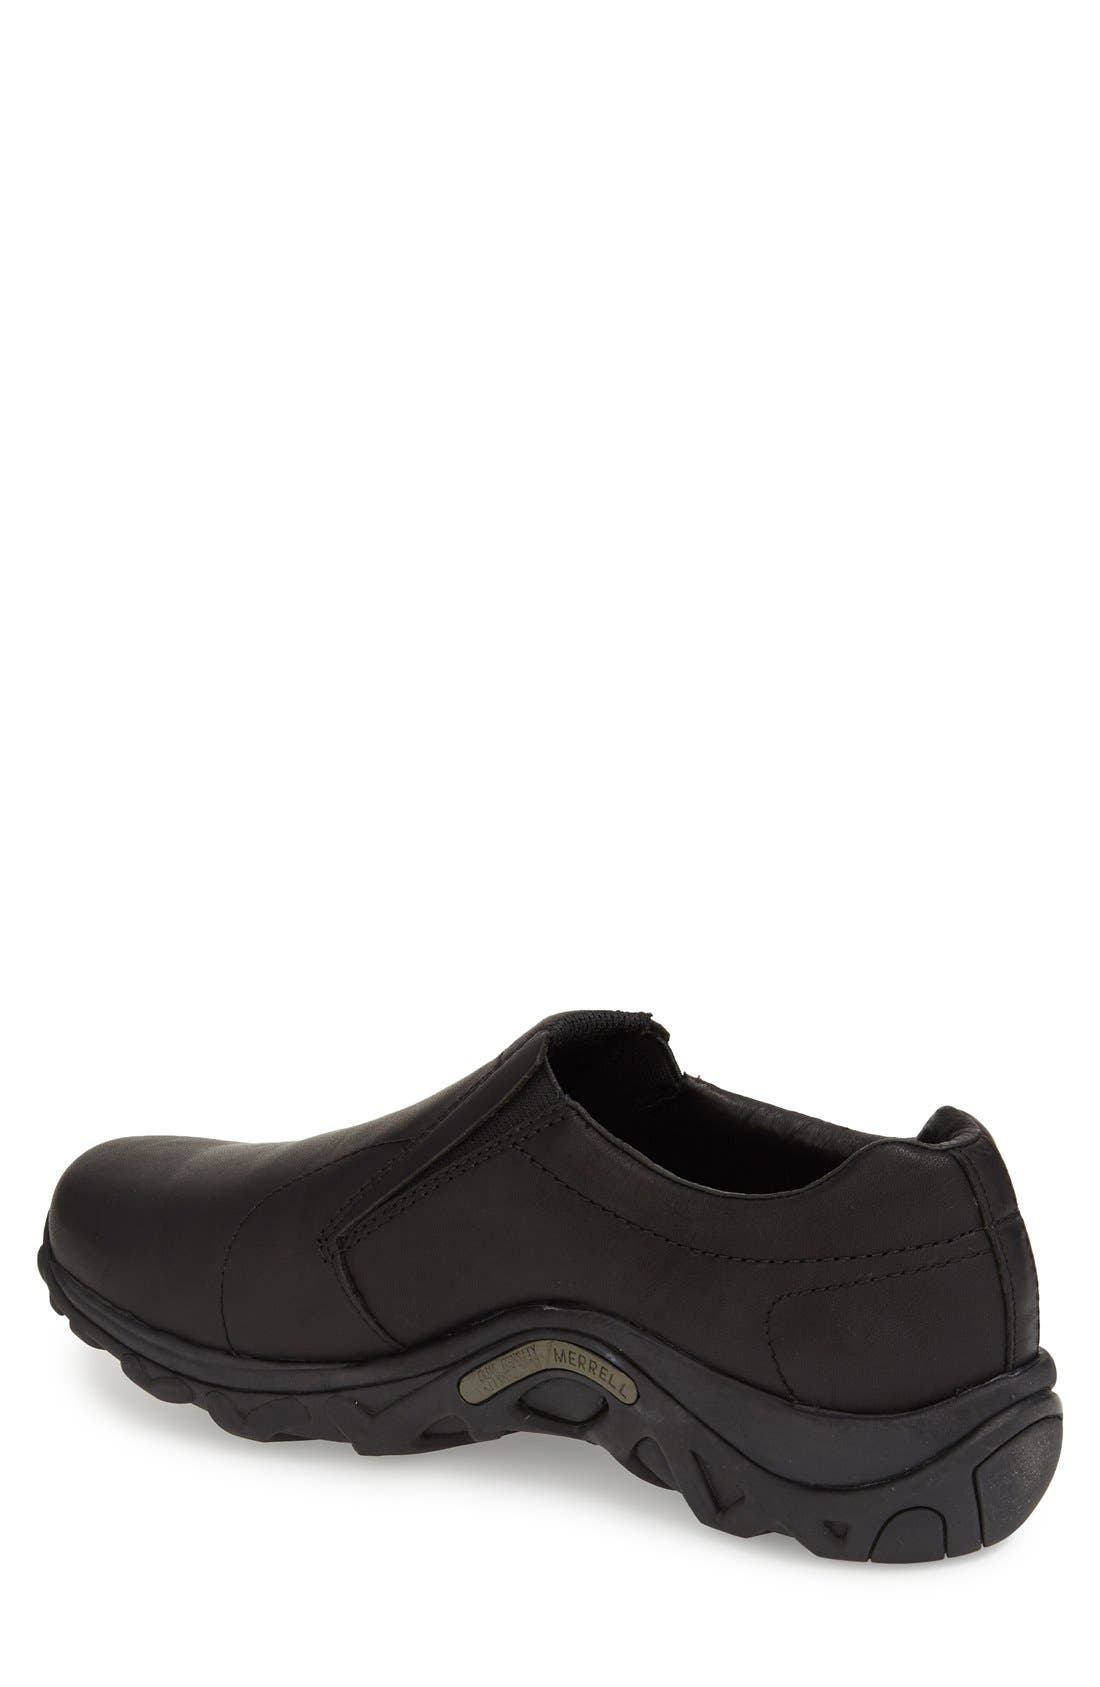 'Jungle Moc' Leather Athletic Slip-On,                             Alternate thumbnail 2, color,                             Black